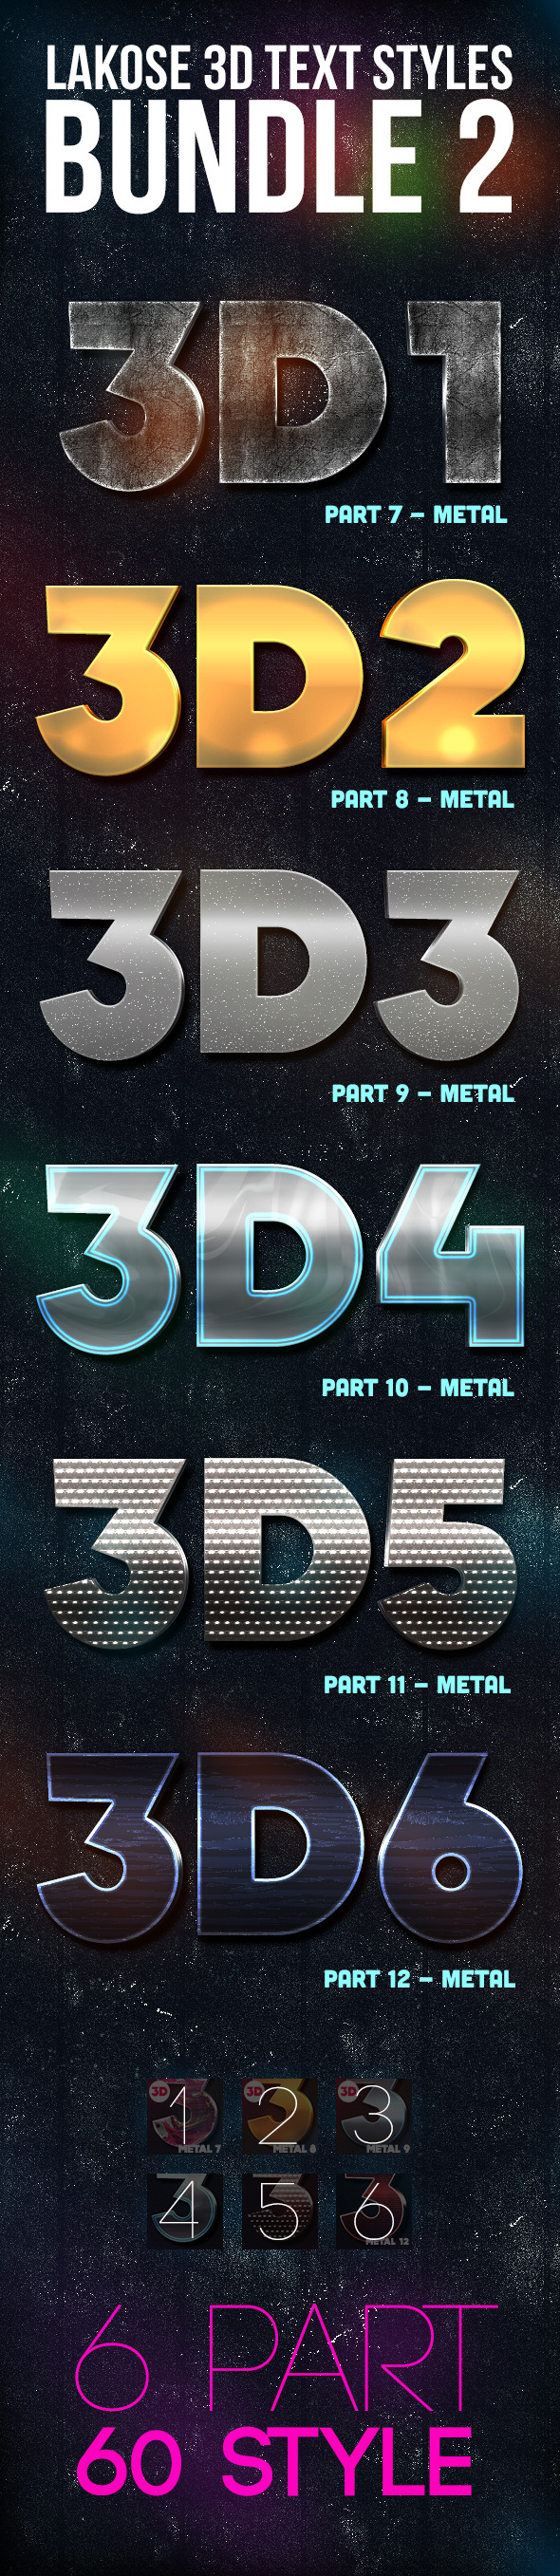 GraphicRiver Lakose 3D Text Styles Bundle 2 9453735